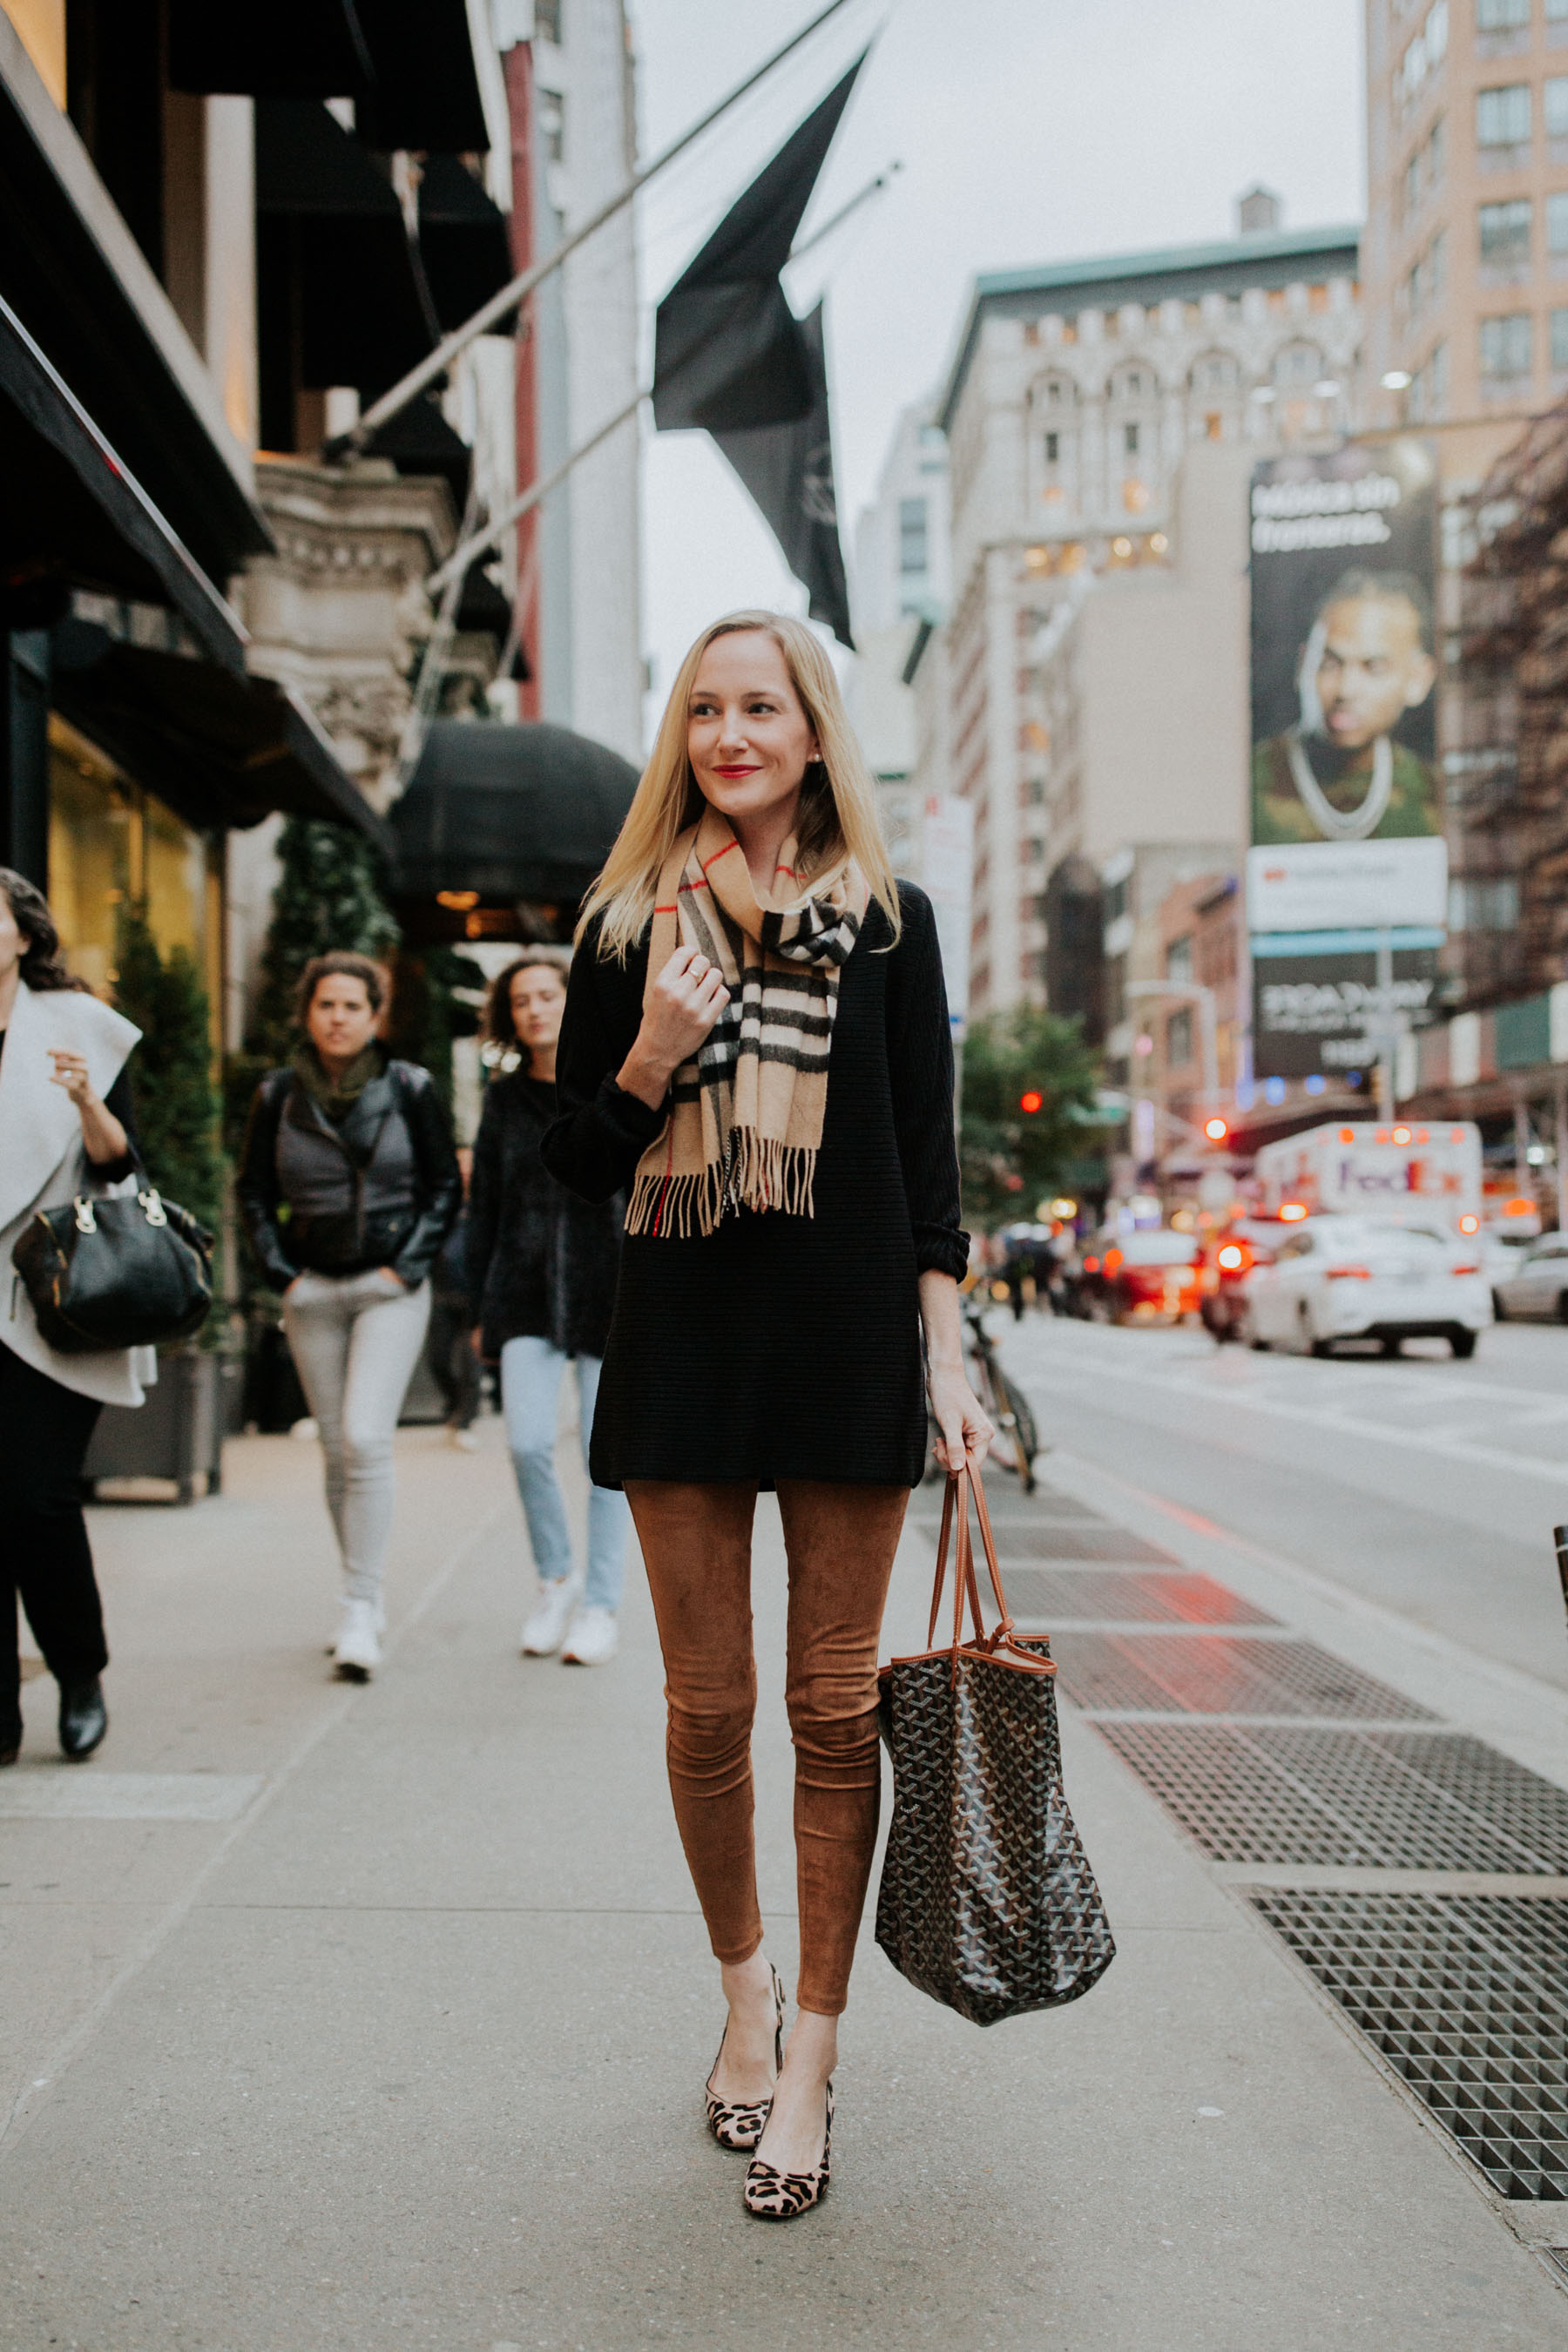 The perfect outfit for NYC